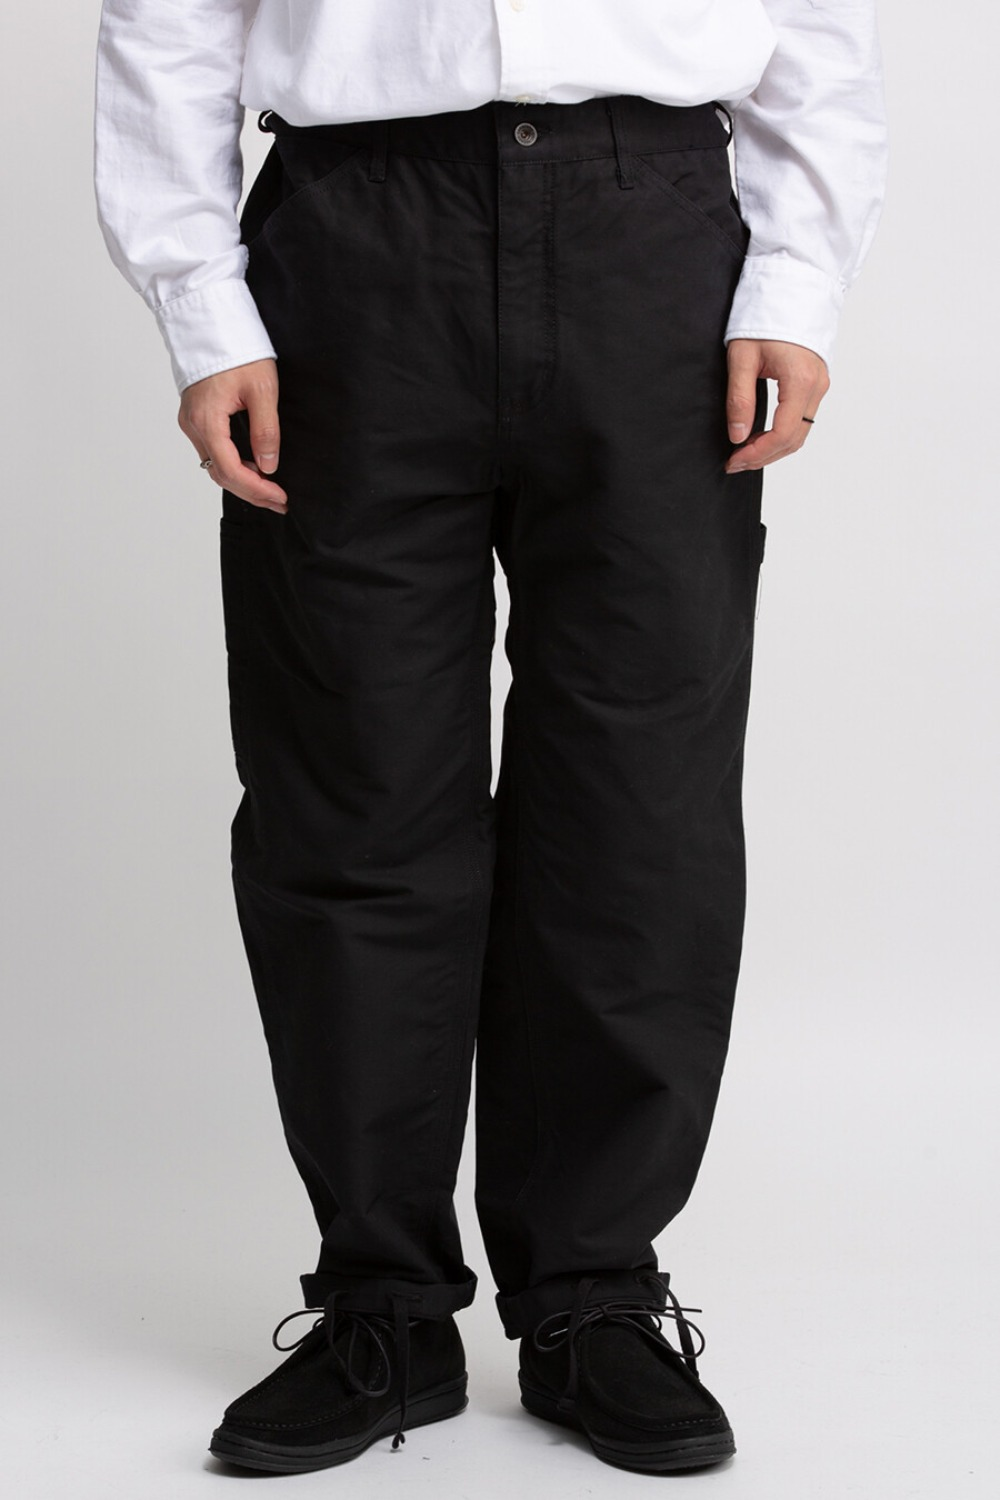 PAINTER PANT BLACK COTTON DOUBLE CLOTH